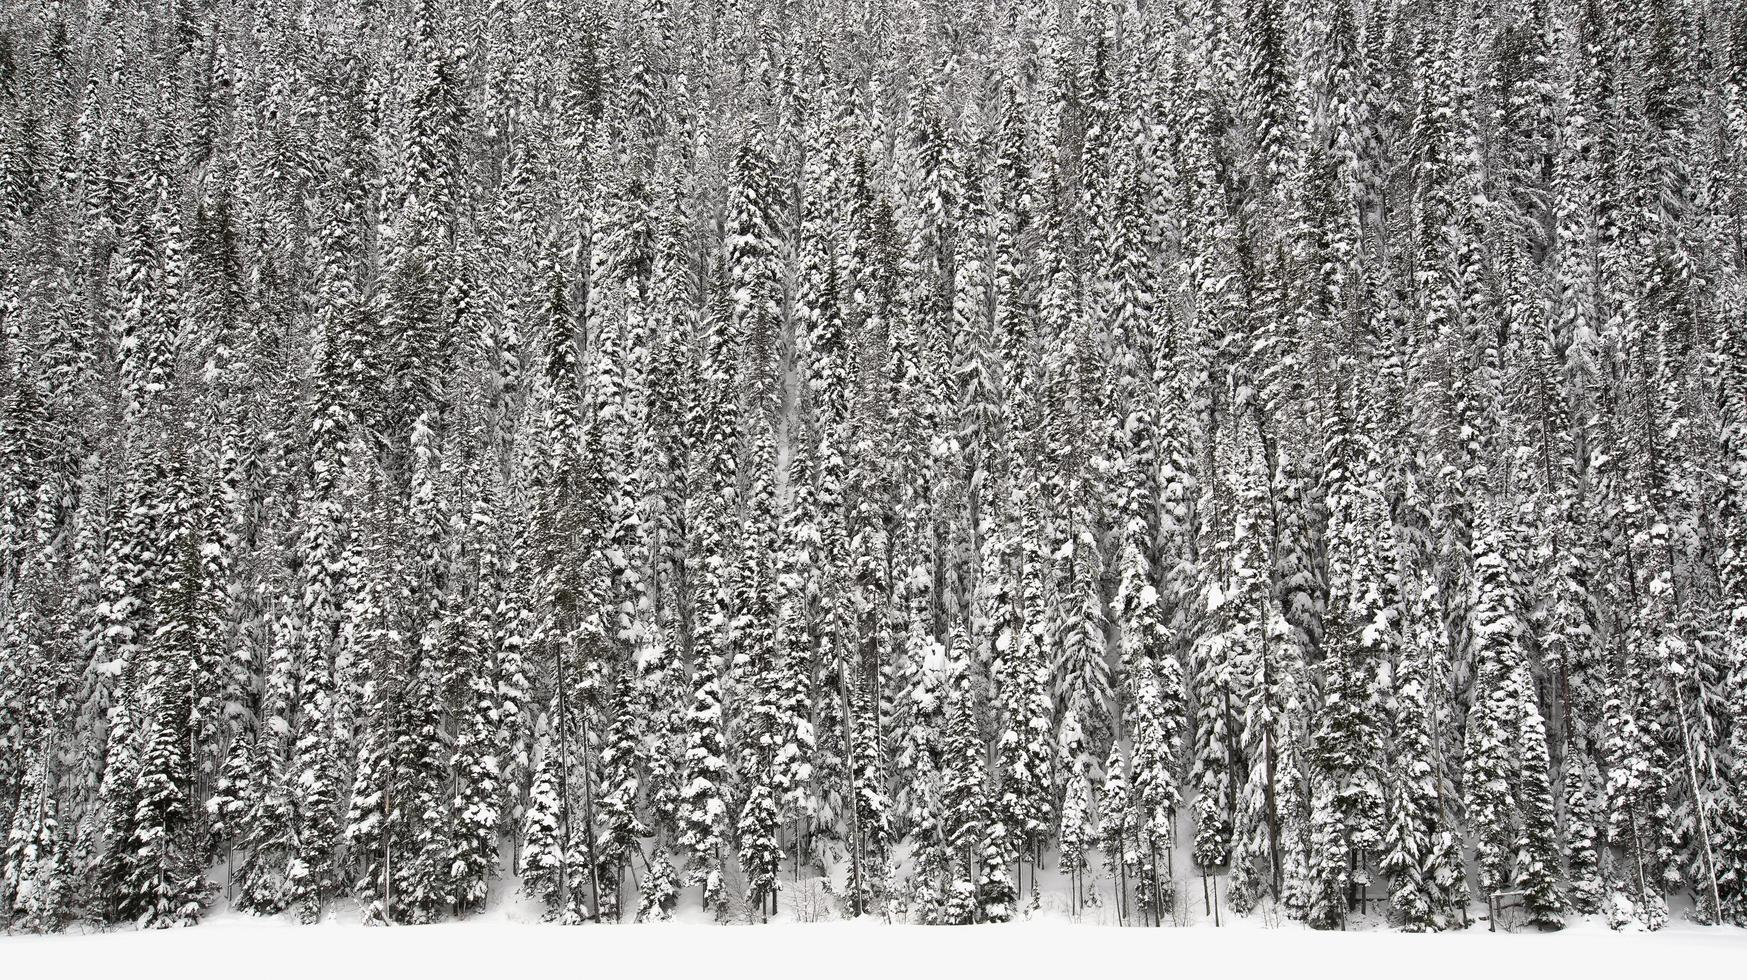 Fir tree forest in snow photo